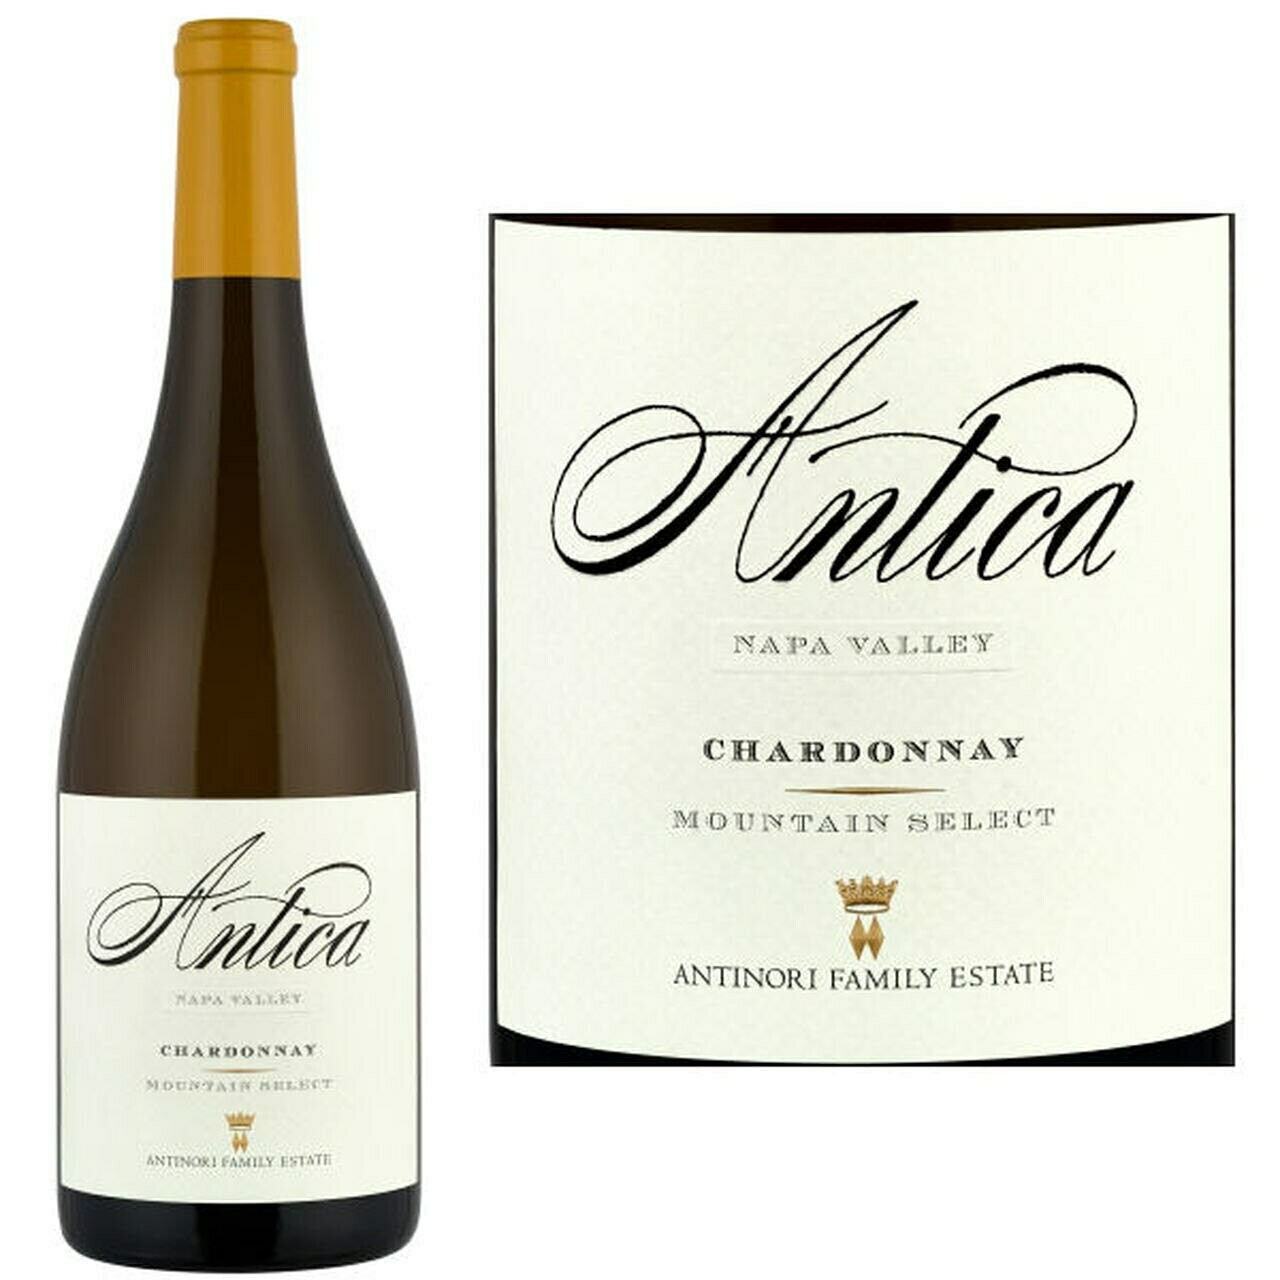 Antinori Family Antica Napa Valley Chardonnay, Napa Valley 2018 (750 ml)